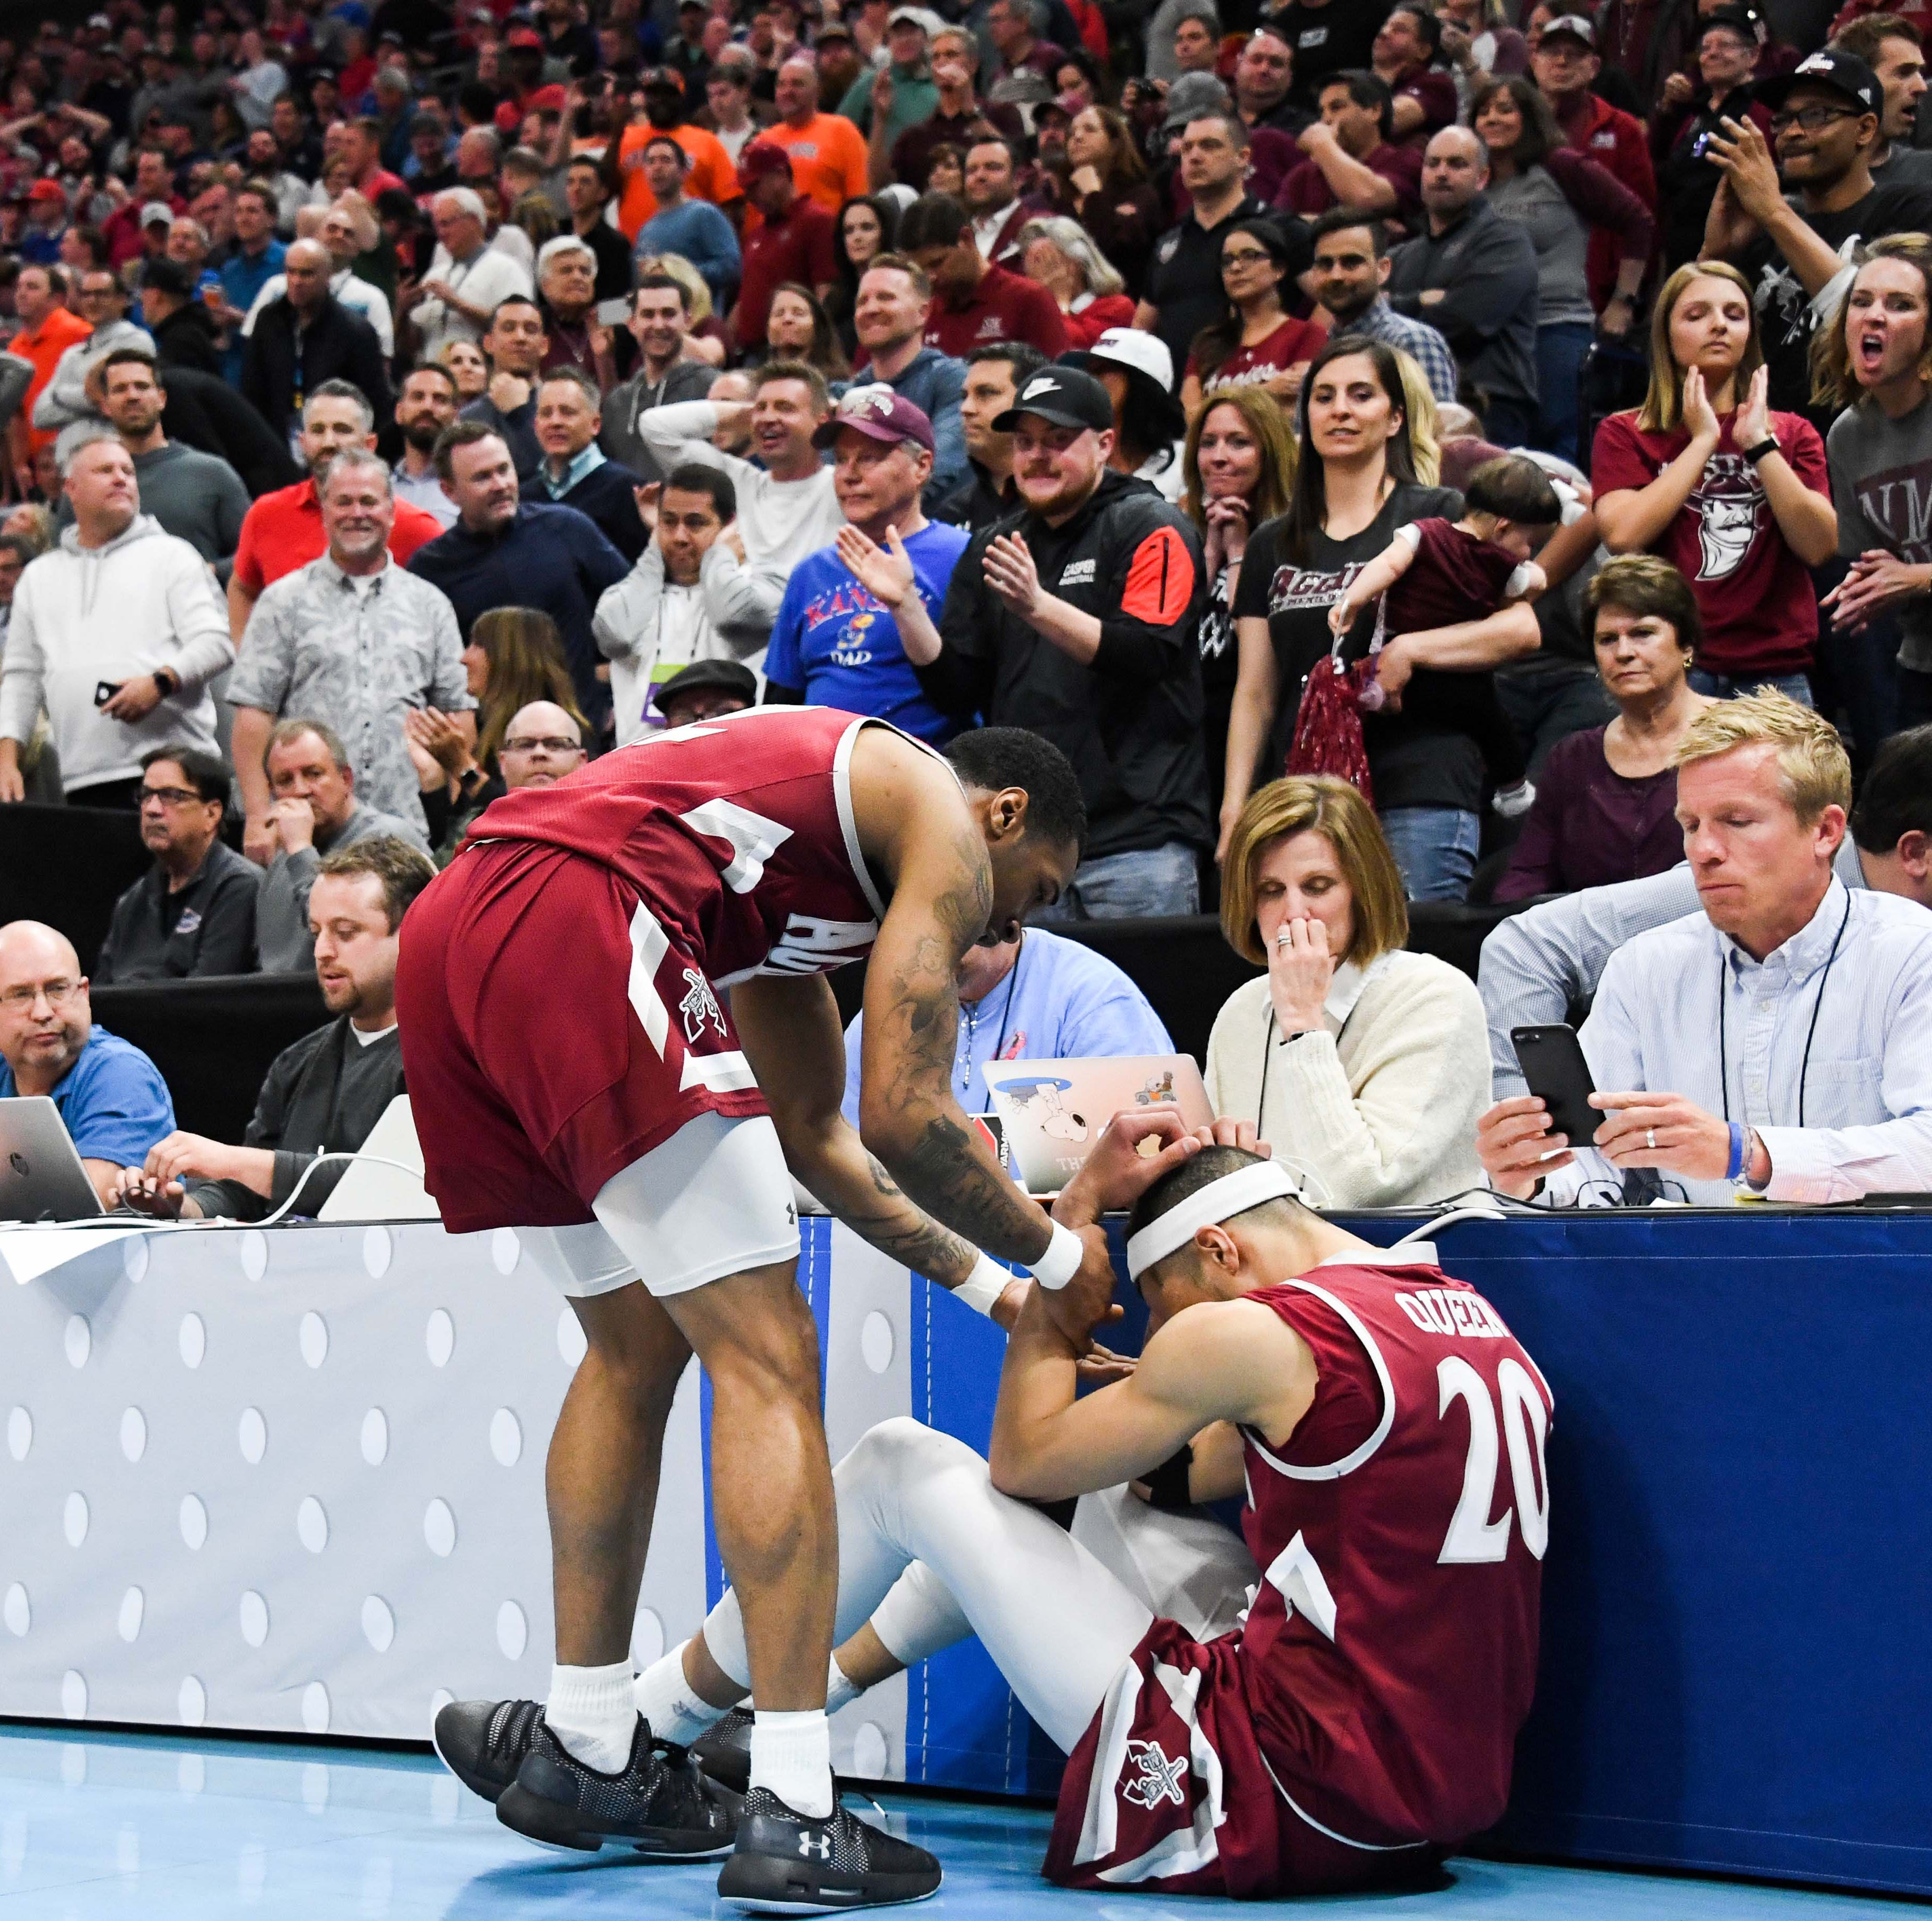 New Mexico State's upset bid falls just short against Auburn